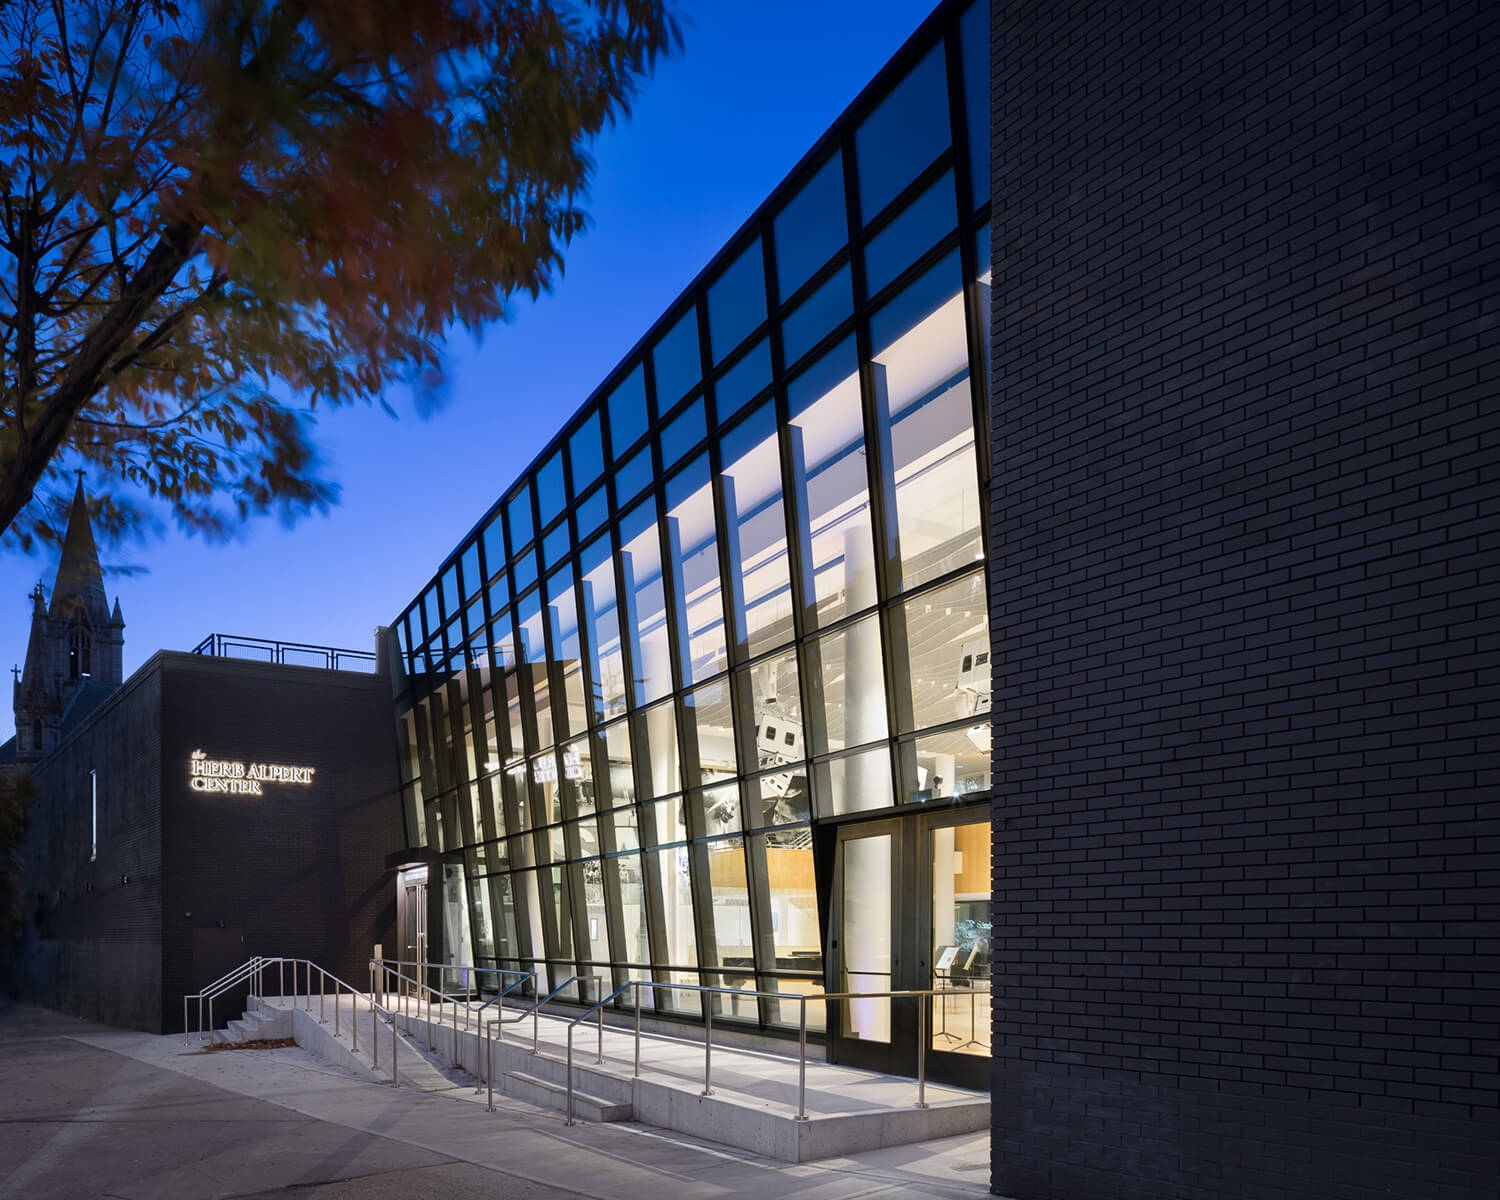 Harlem School of the Arts at night as seen from the street, showing the newly renovated glass facade and accessible entrance ramp